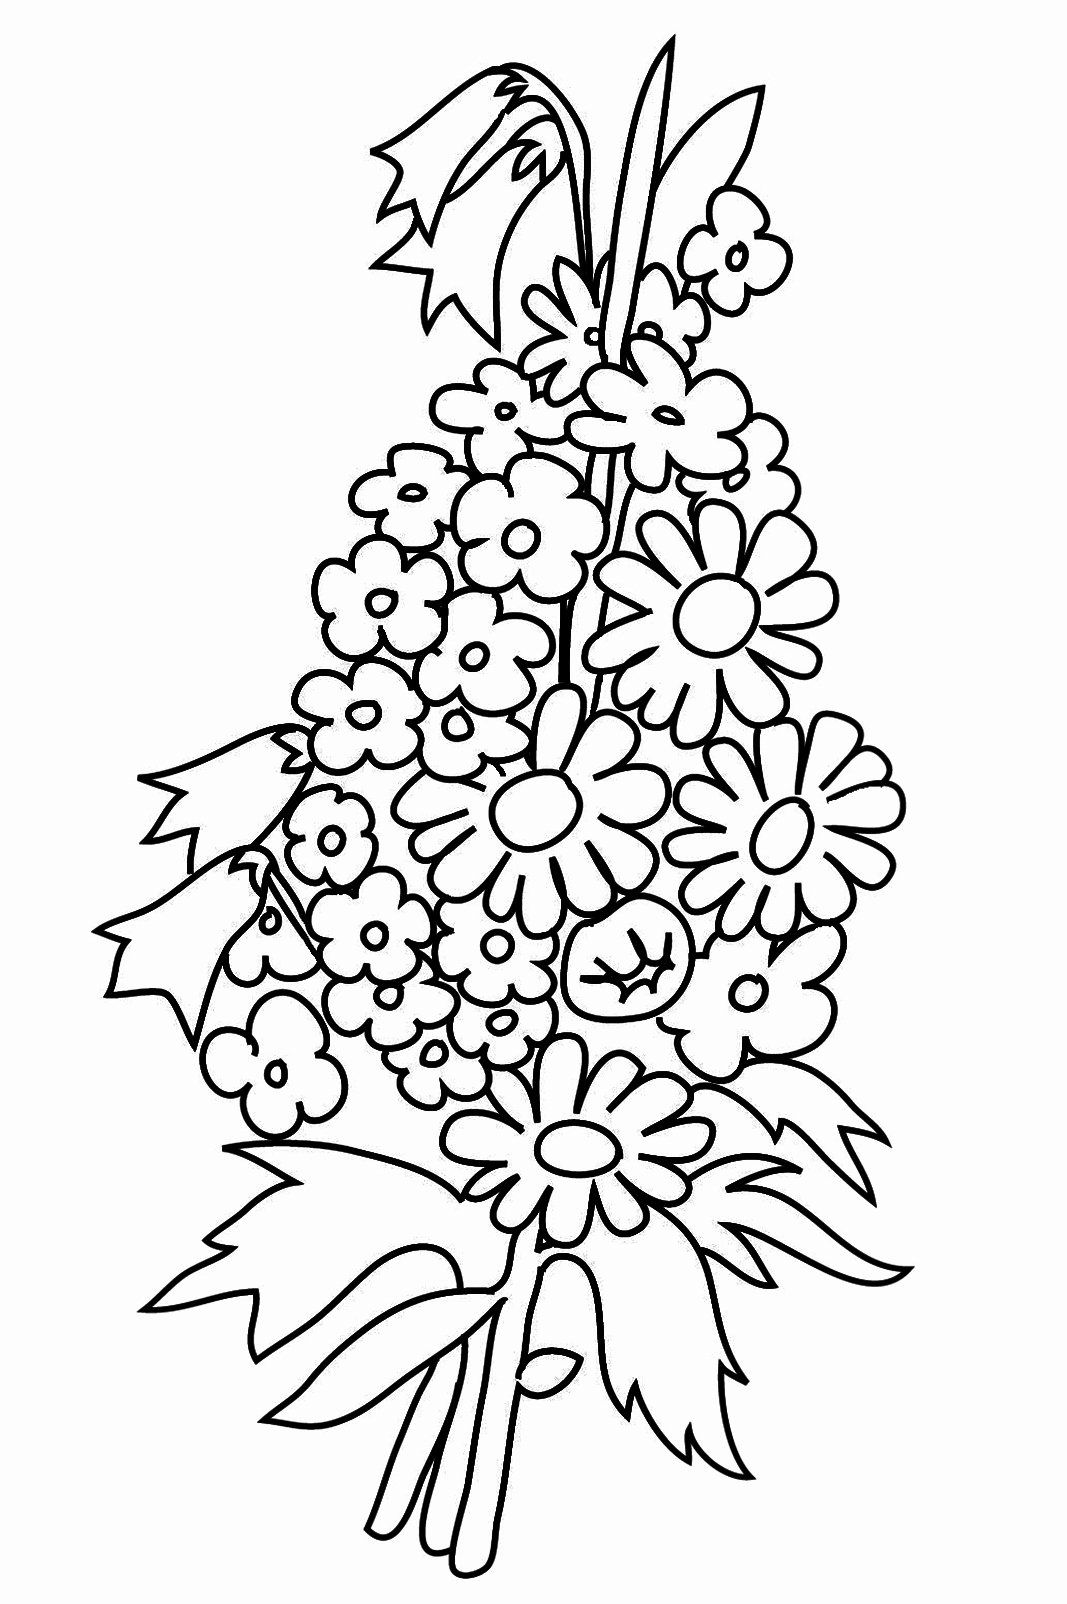 Printable Coloring Pictures Of Flowers New For Me Not Coloring Pages In 2020 Flower Coloring Pages Printable Flower Coloring Pages Elsa Coloring Pages